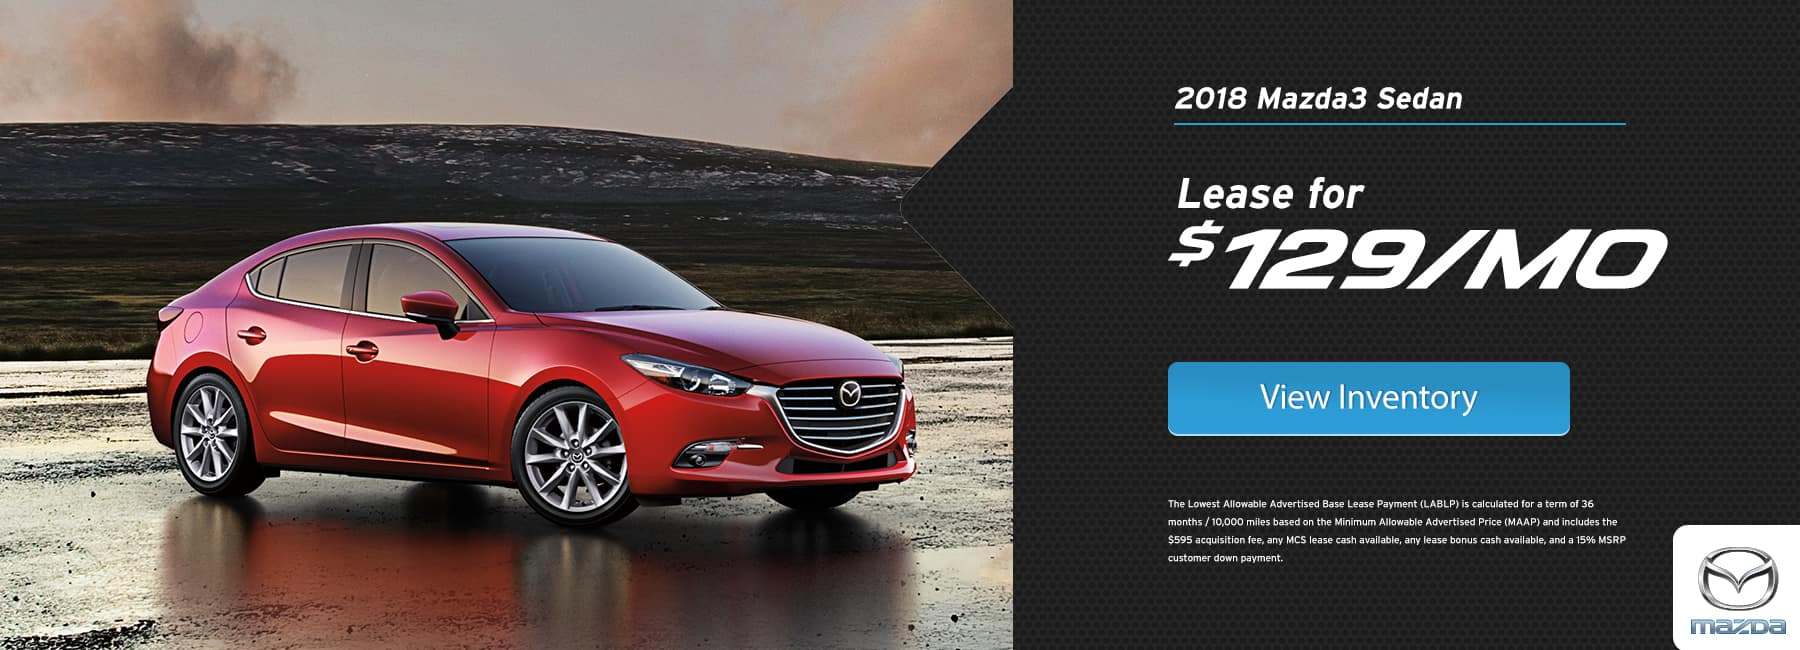 Mazda 3 January Lease Special